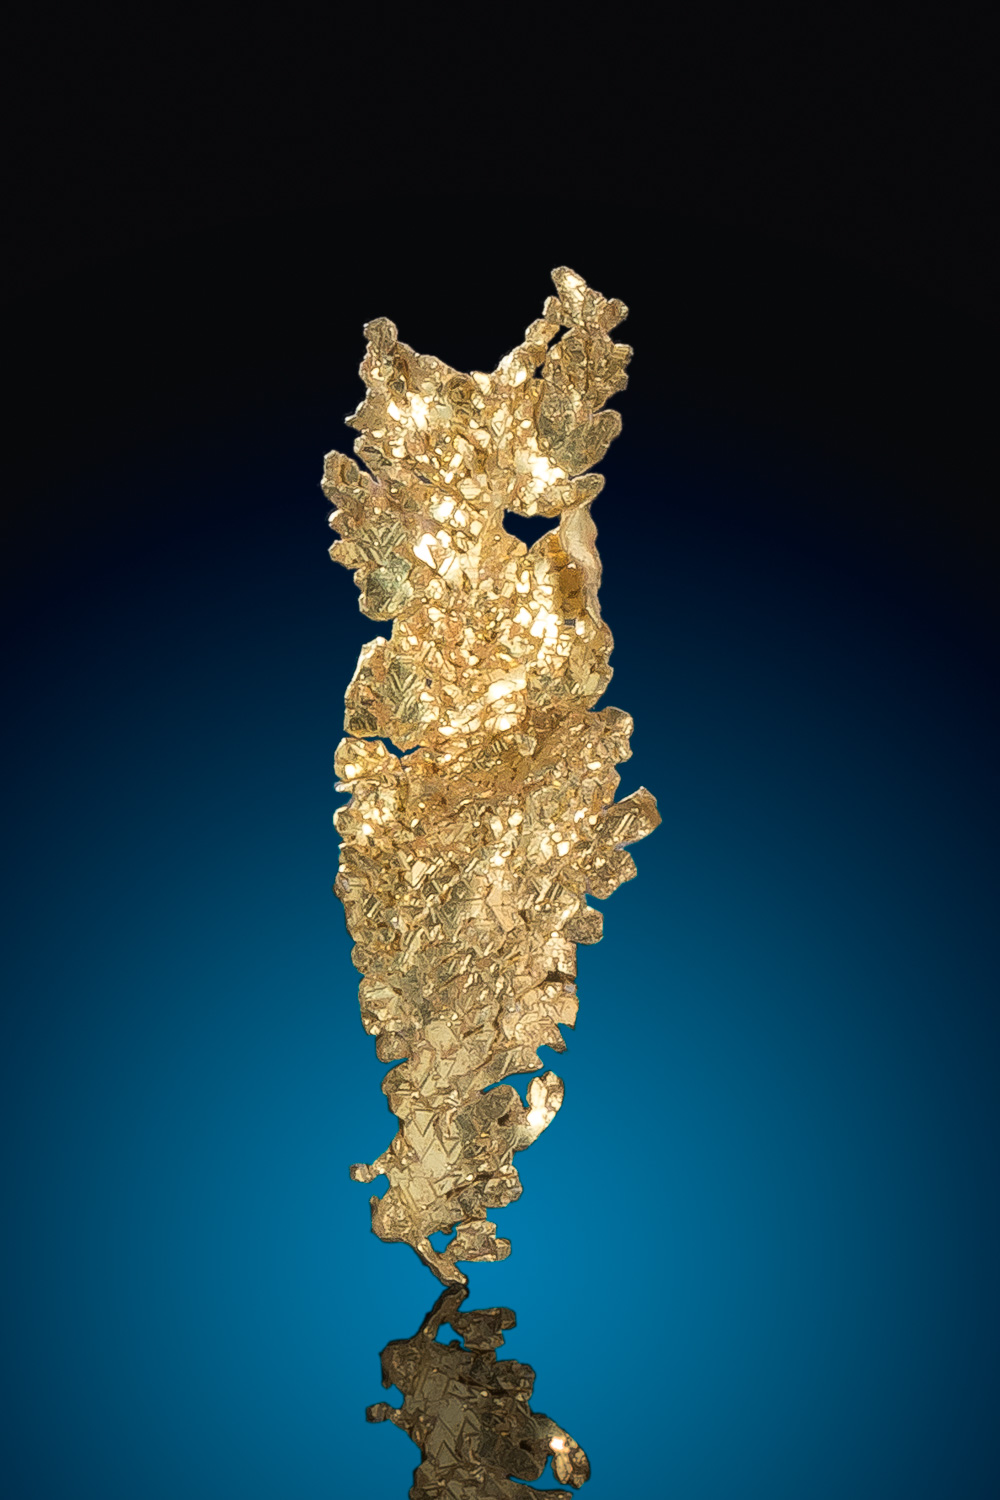 Elongated Sharp Leaf Gold Crystal - Round Maountain